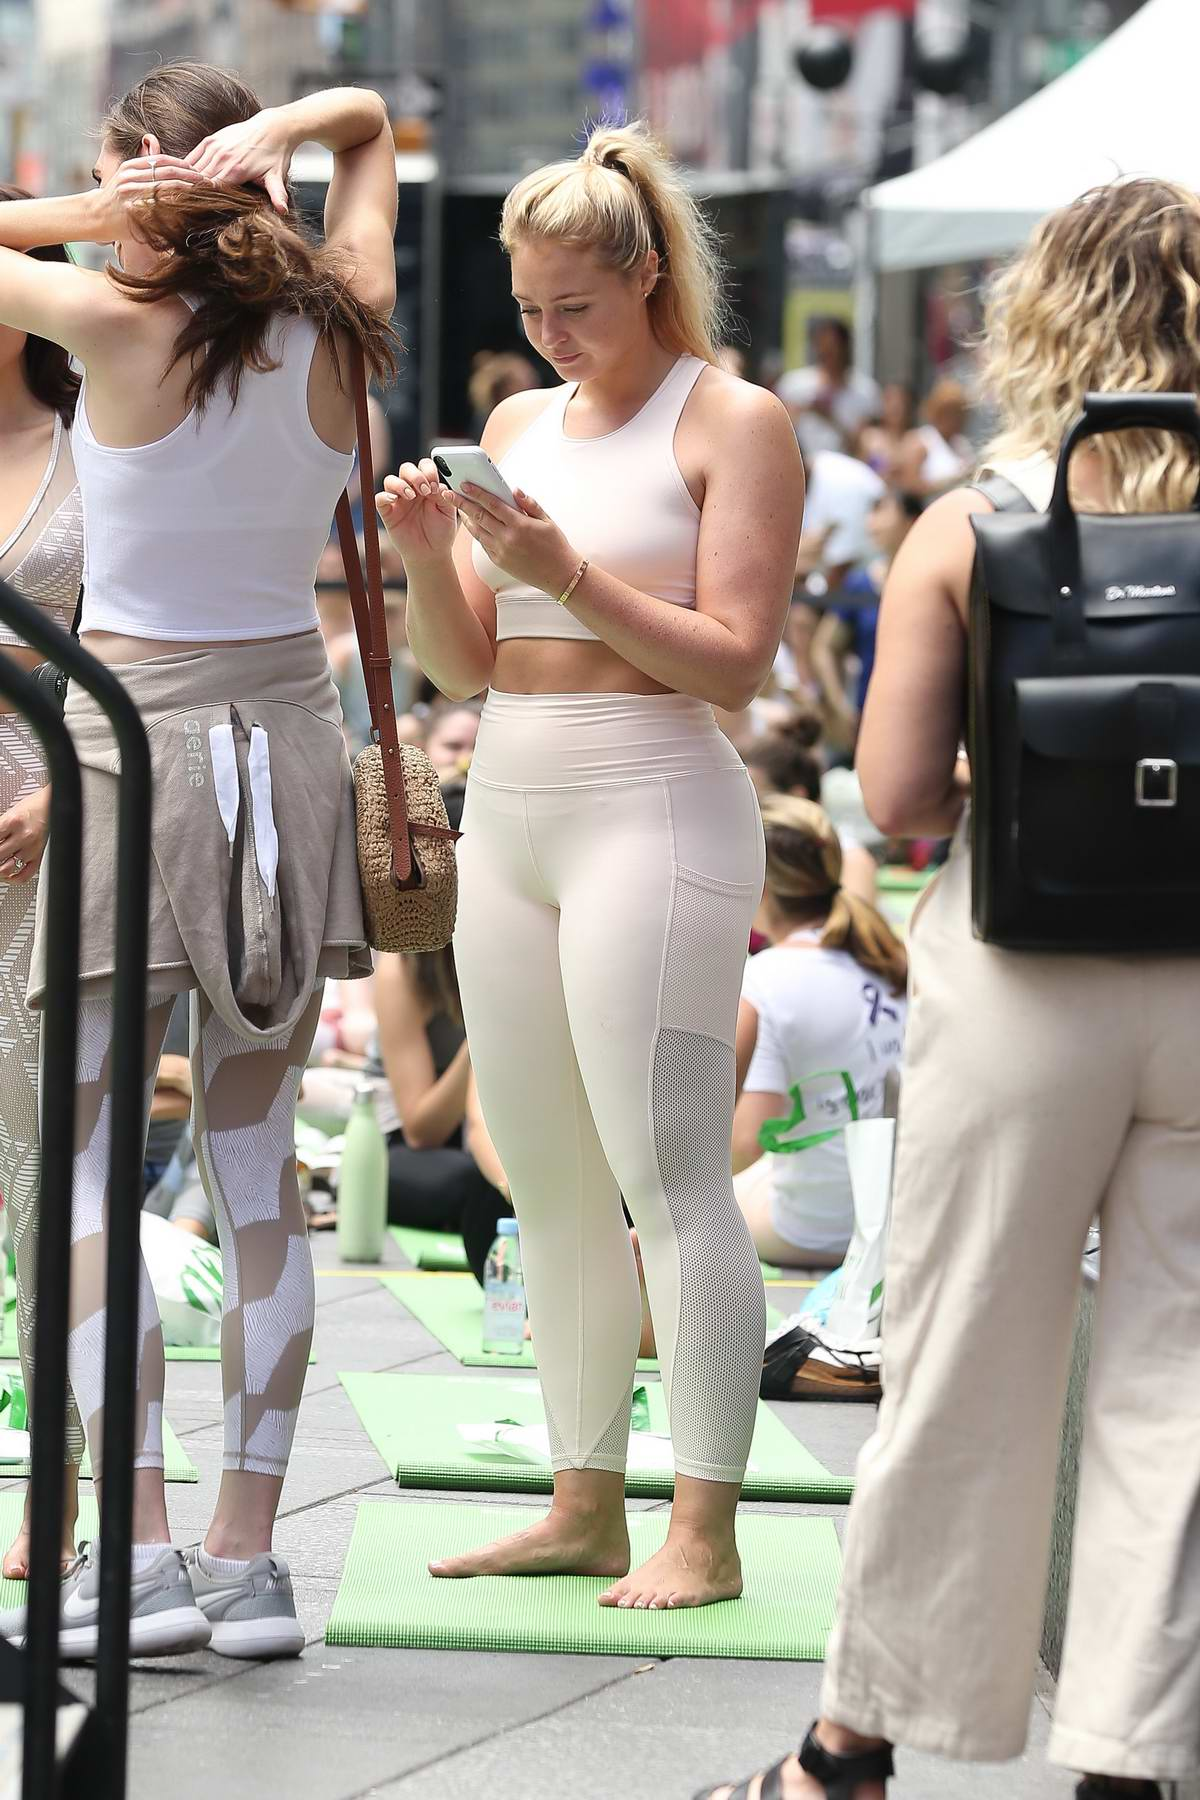 Iskra Lawrence spotted at a yoga session in Times Square, New York City